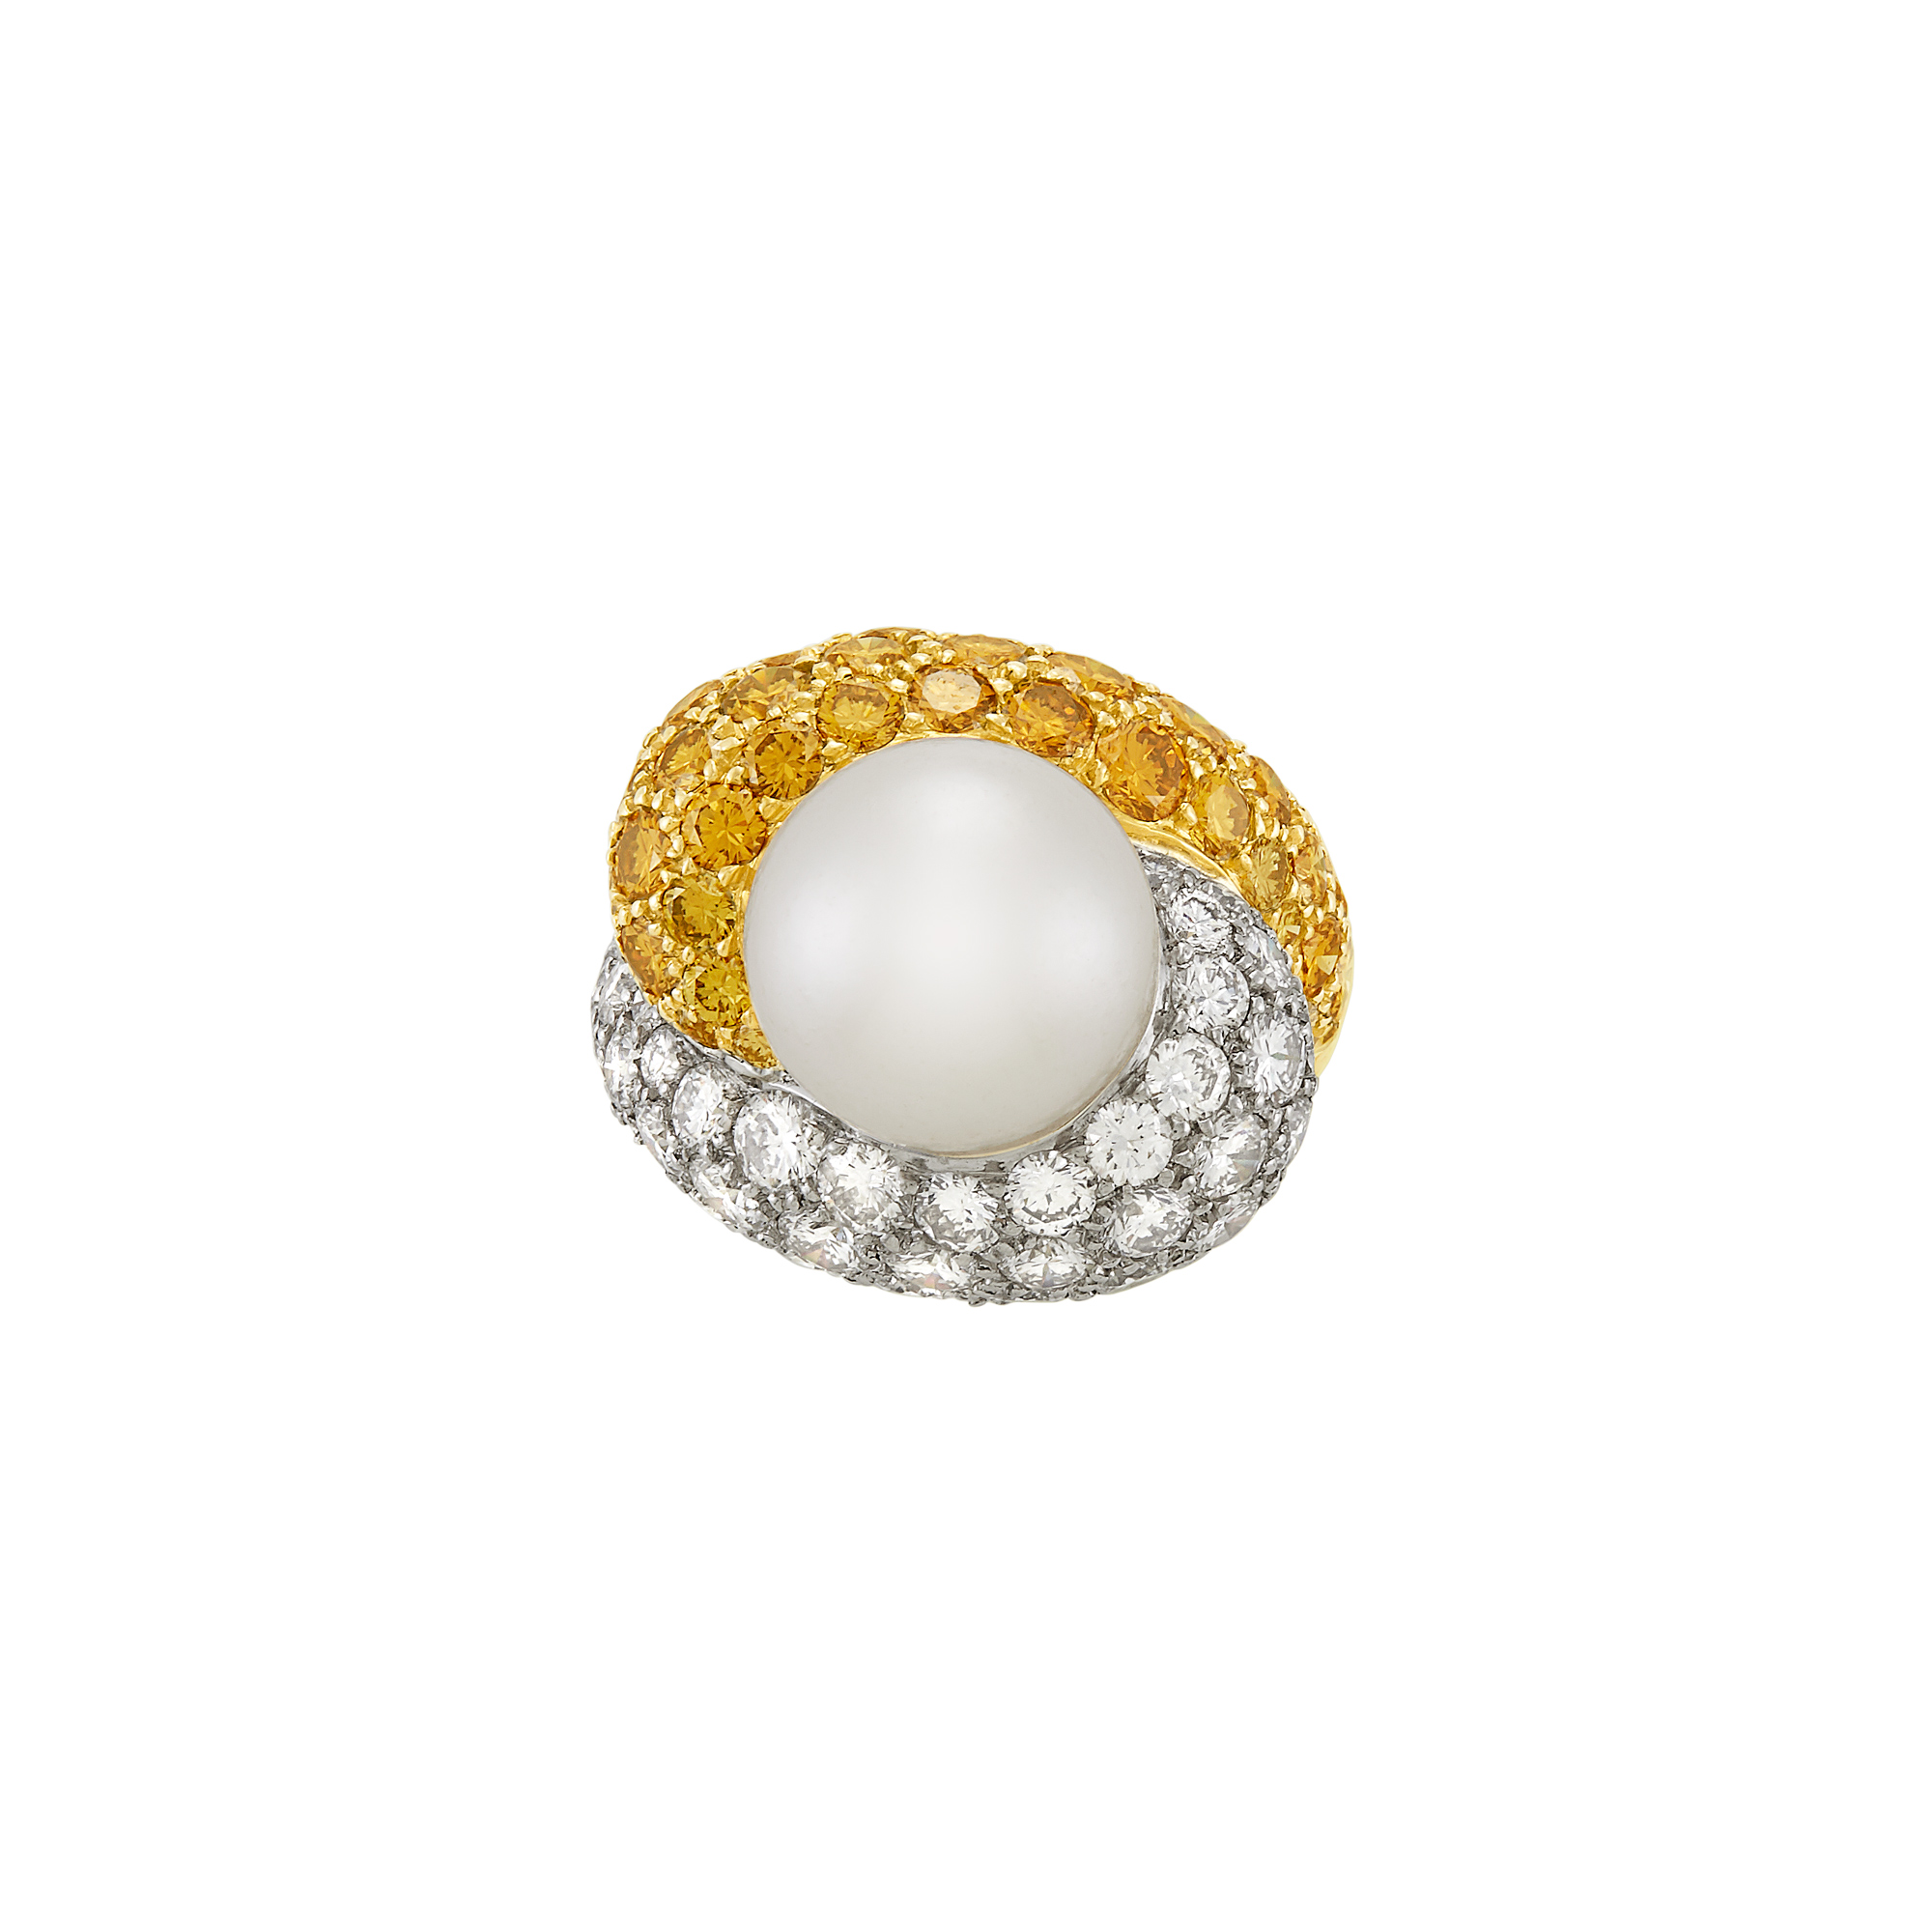 Lot image - Gold, Platinum, Cultured Pearl, Diamond and Colored Diamond Bypass Bombé Ring